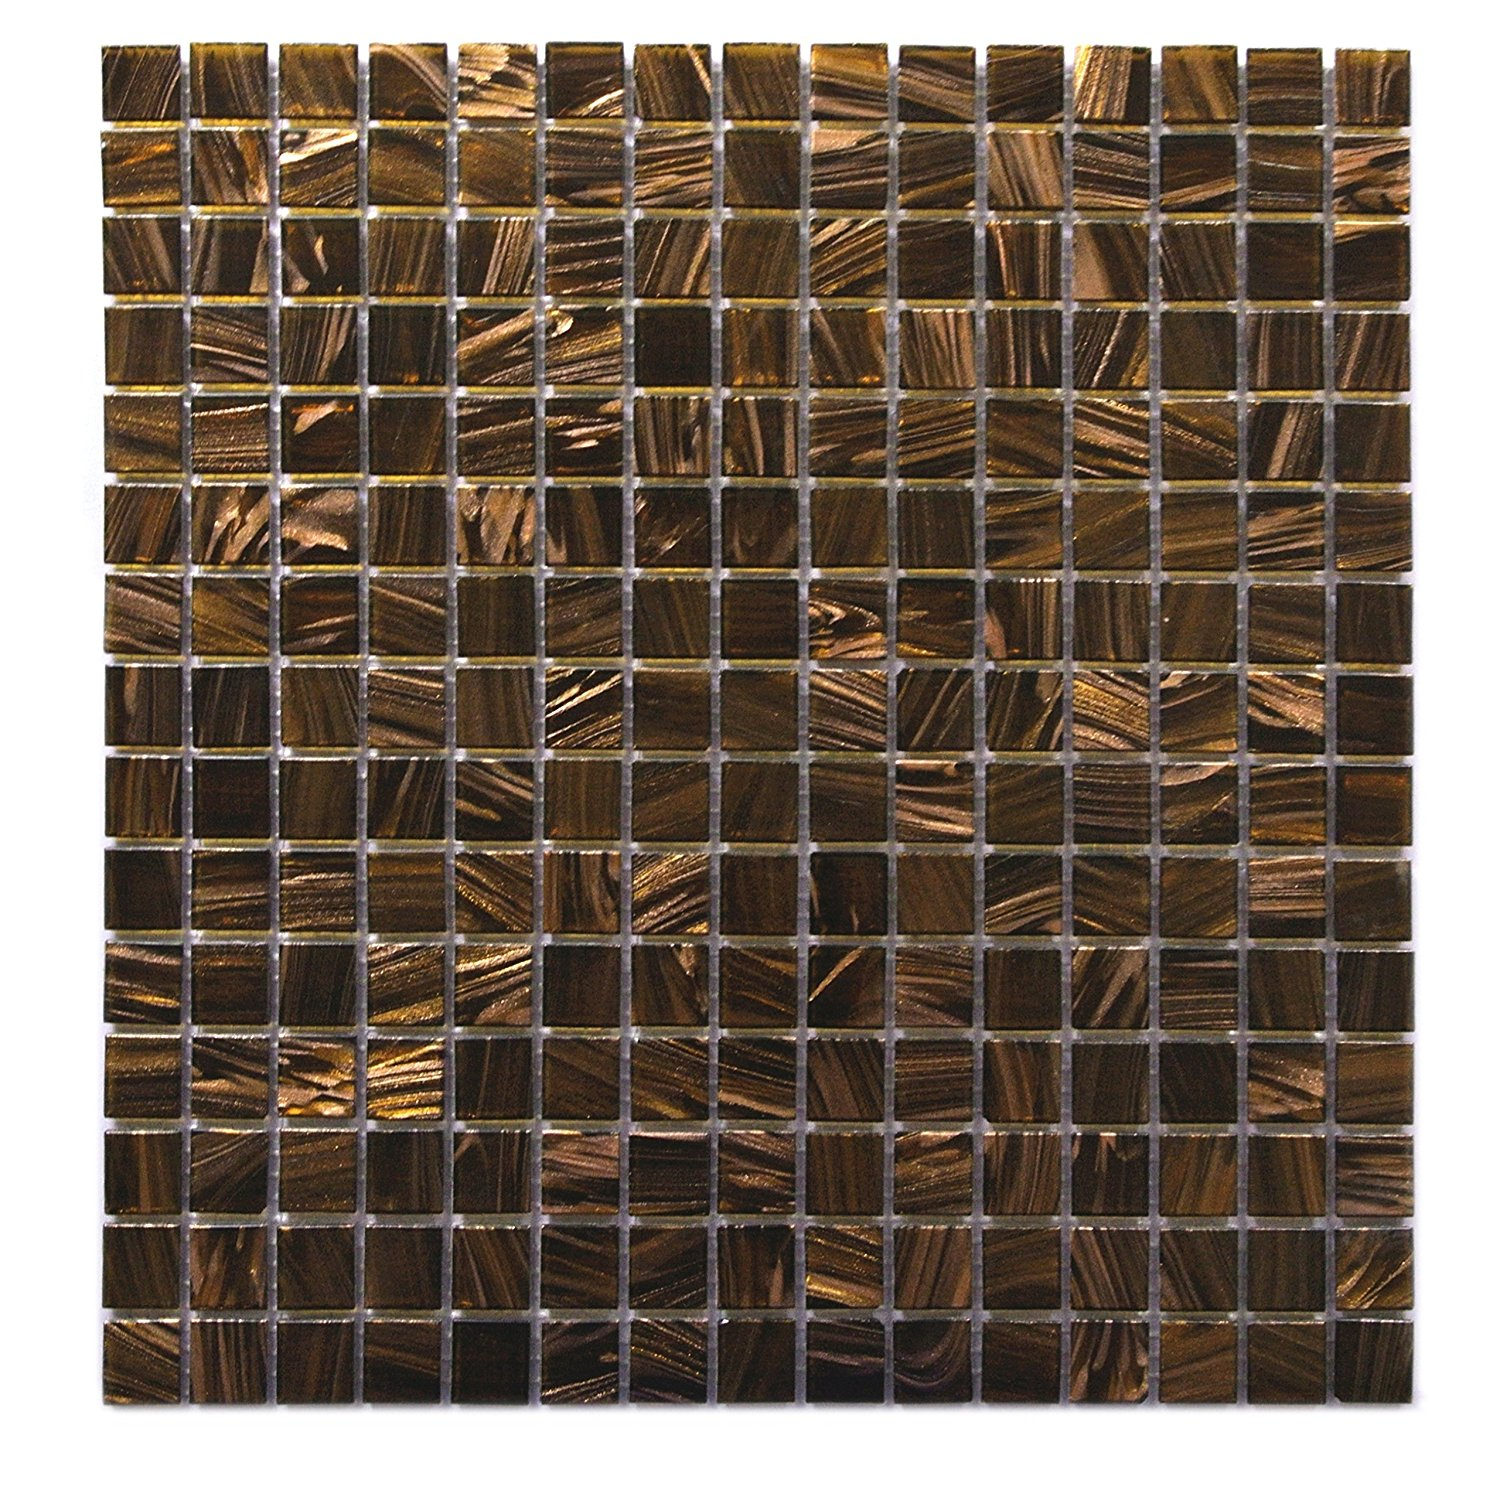 Abolos WHSVEN3434-BN Stone & Glass Mosaic Tile, Bathroom Wall Kitchen Backsplash, 5 Sheets/Box, Shimmering Brown